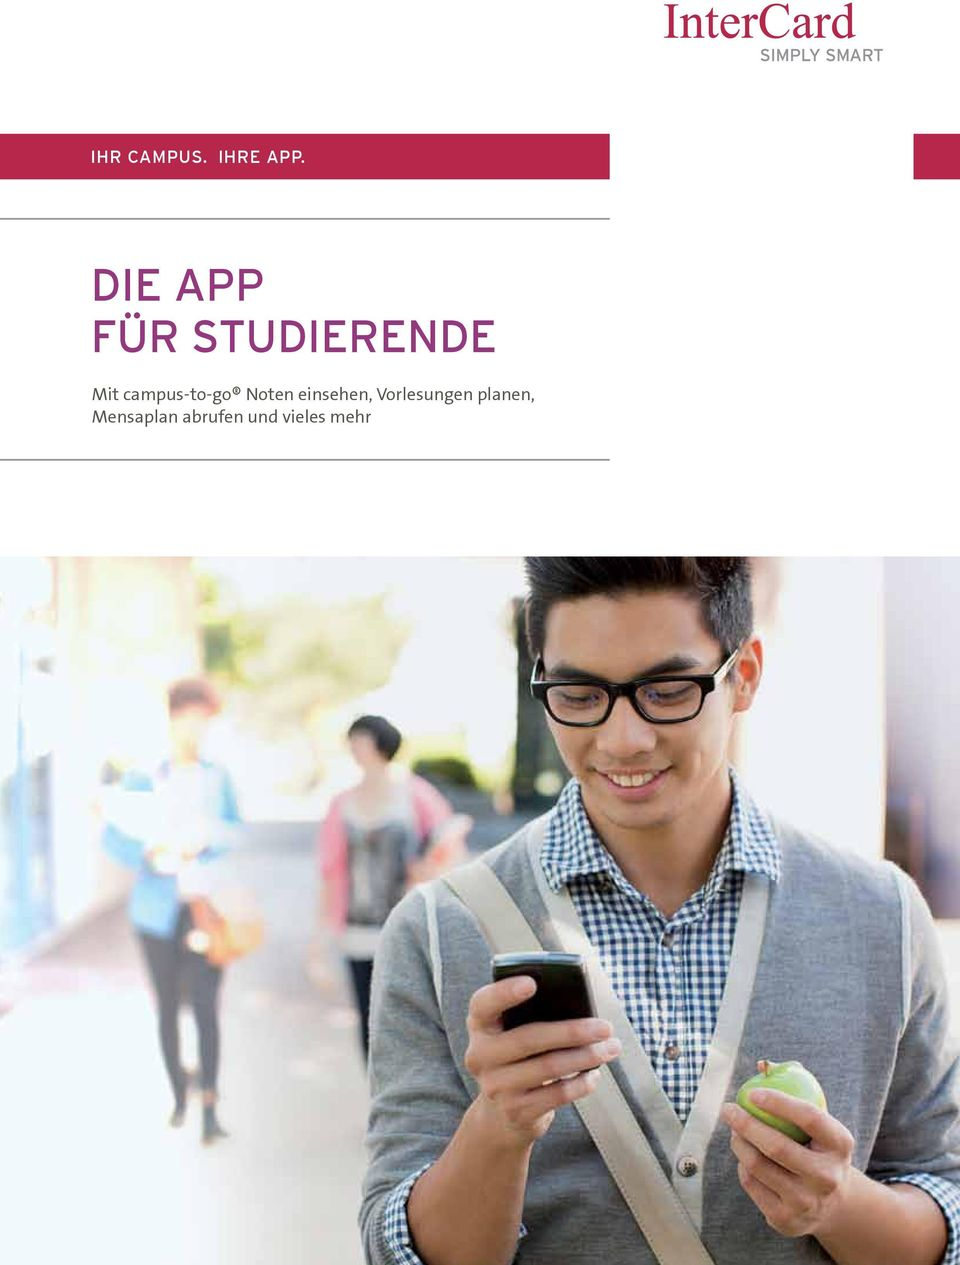 campus-to-go Noten einsehen,